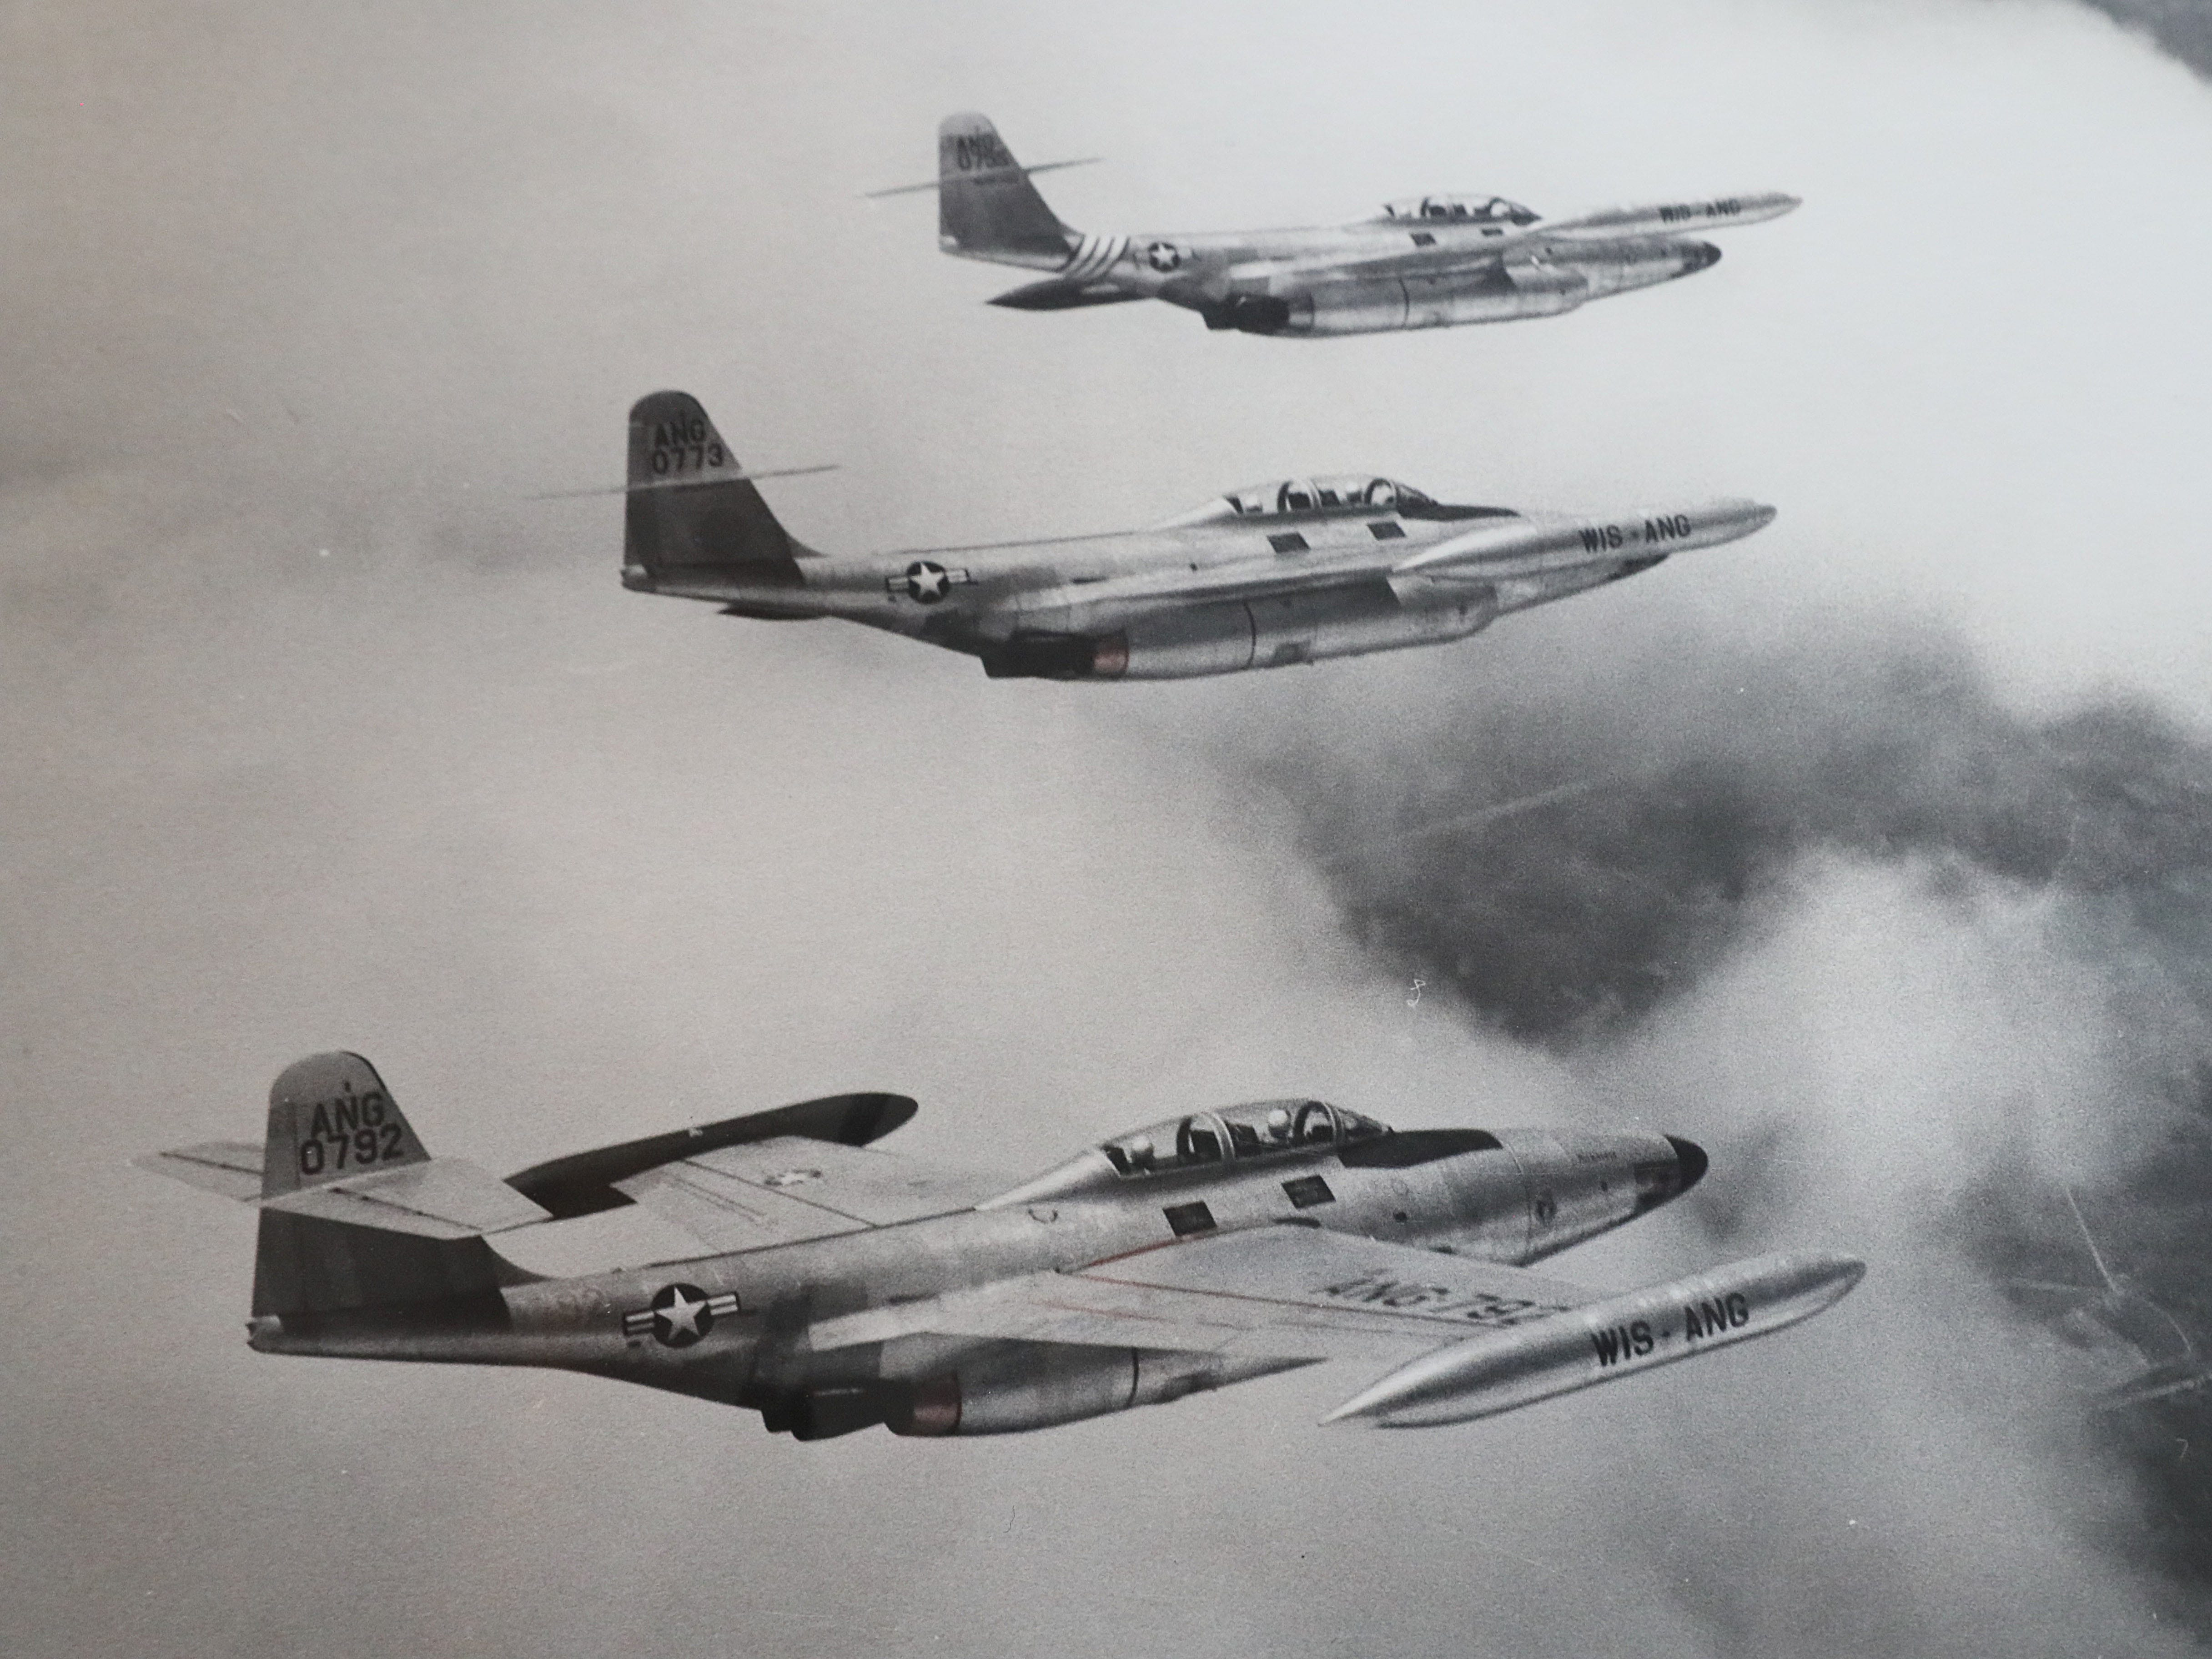 A photo of jets in the Wisconsin Air National Guard.